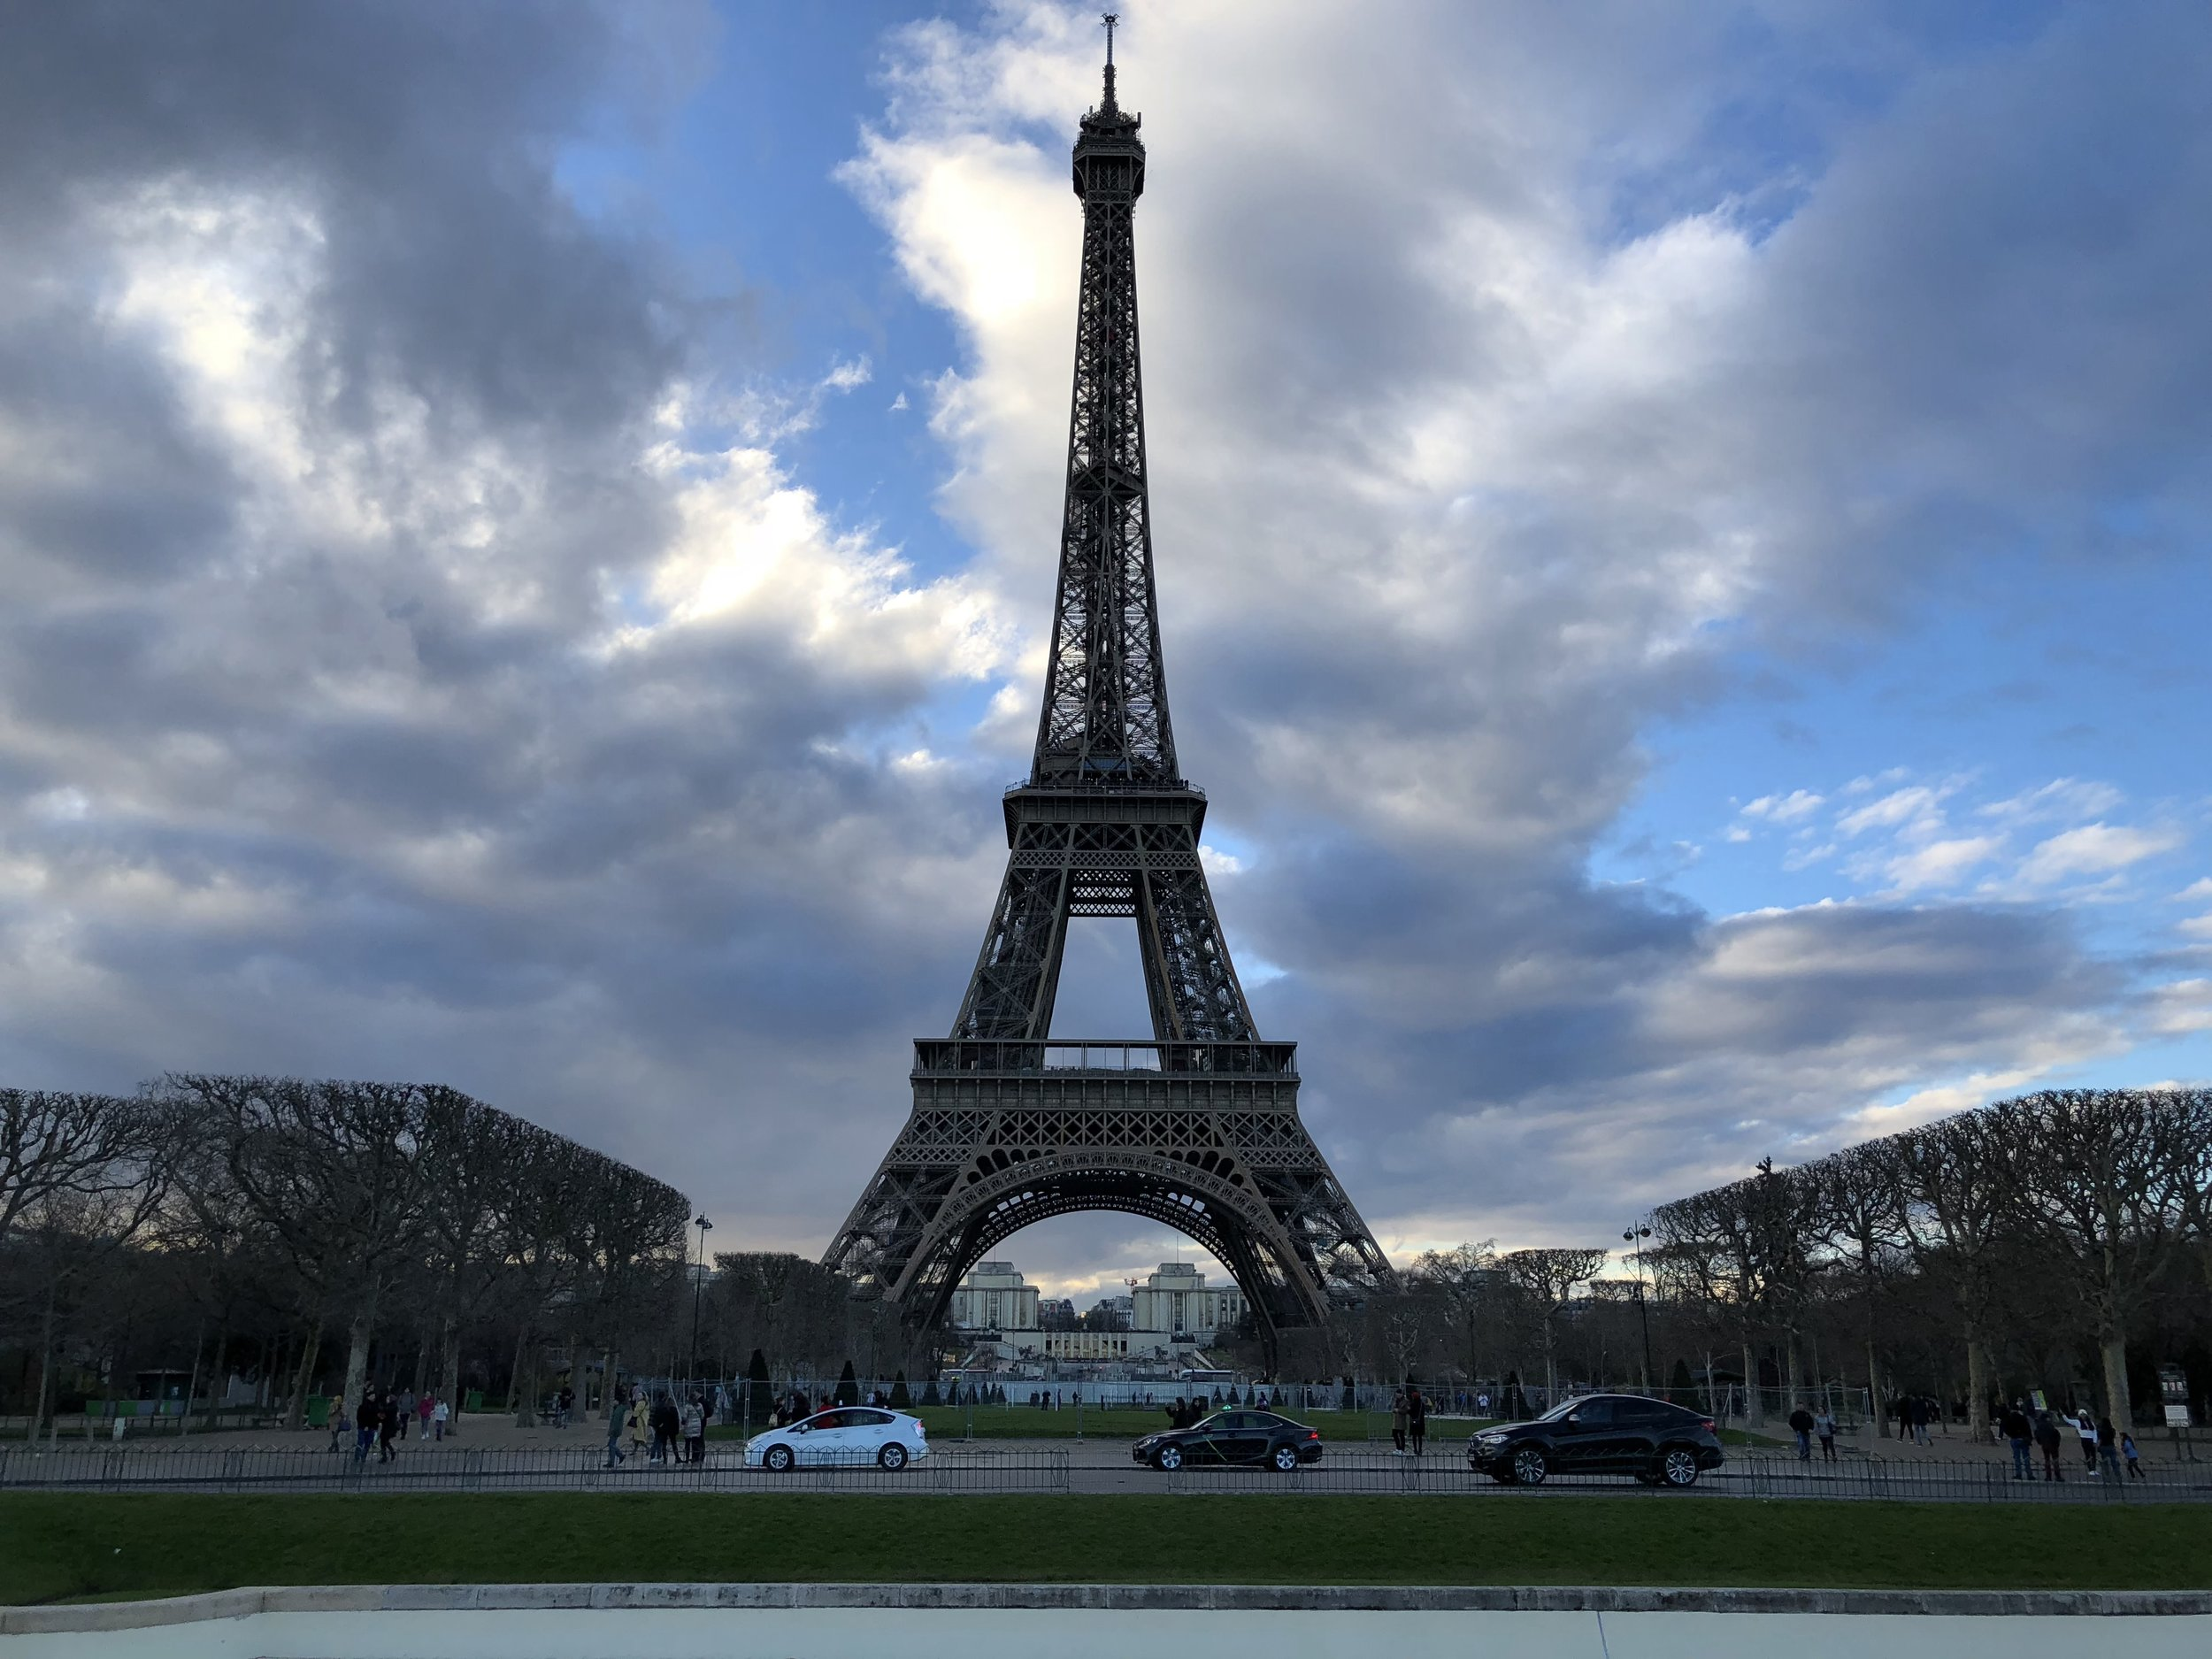 Eiffel Tower in the daytime - Paris, France